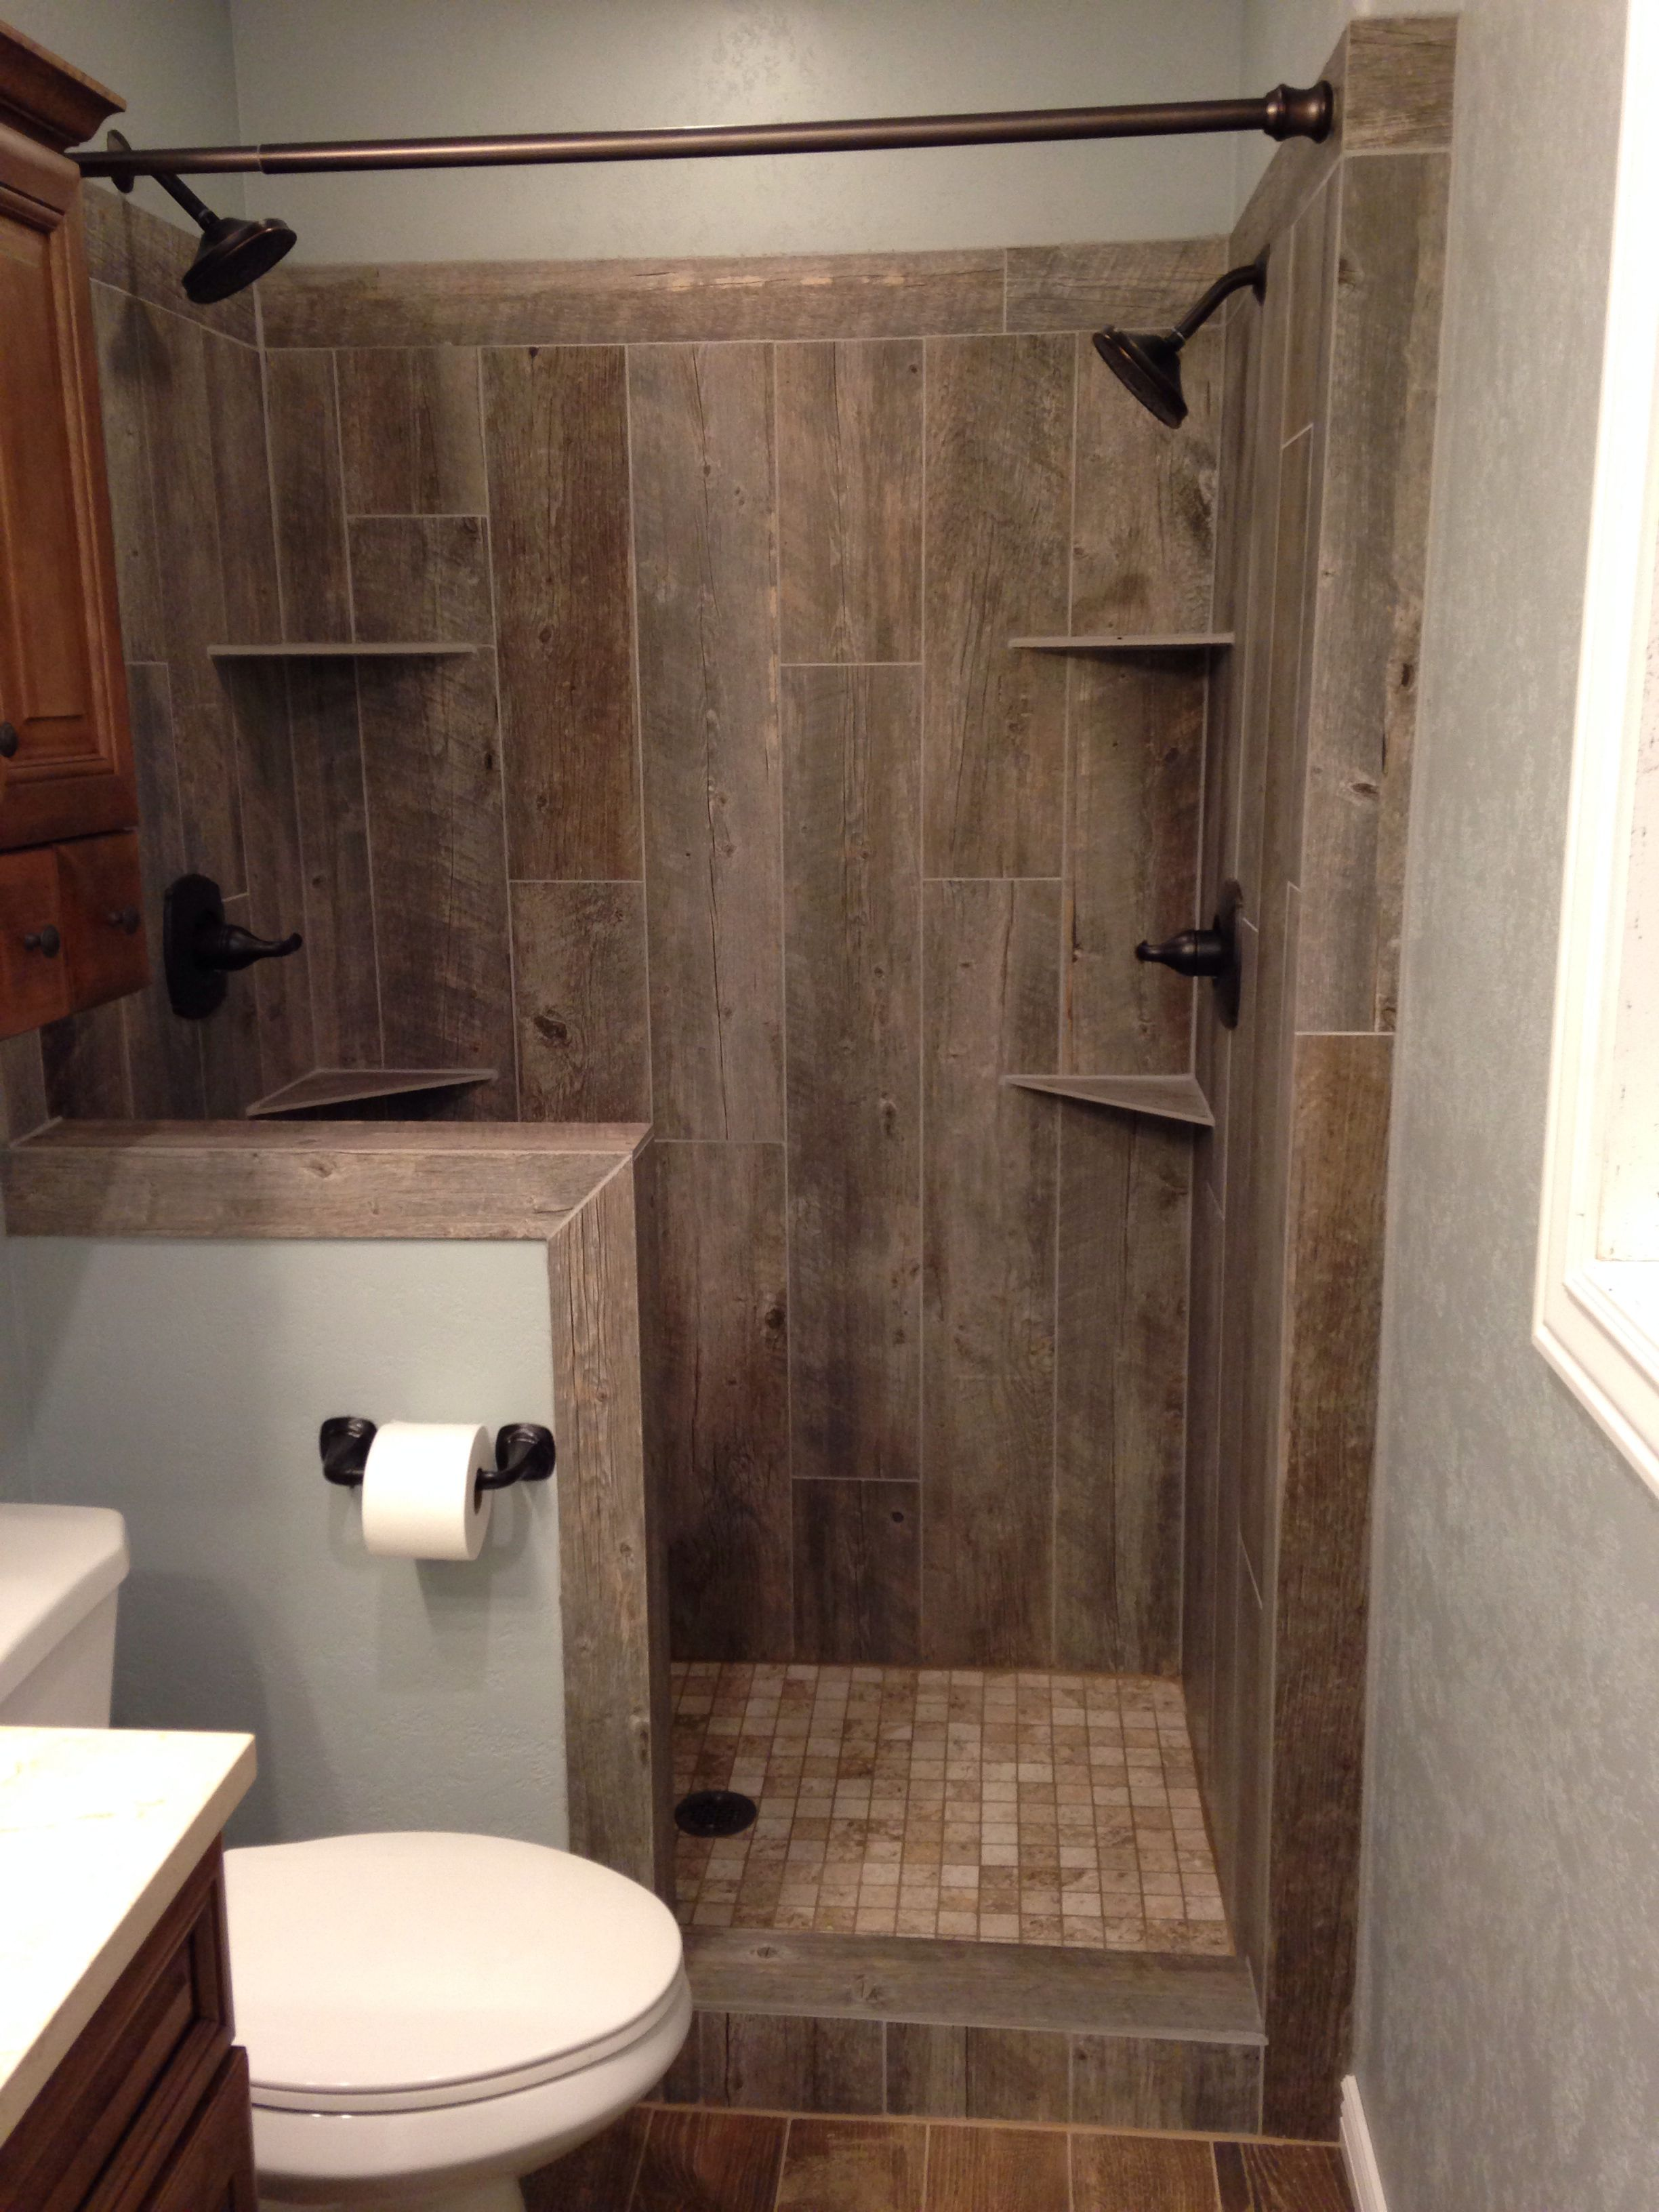 surprising tiles that look like wood. Ceramic tile that looks like barn wood  Small bathroom living large corner shelves double shower heads pony wall to separate toilet 23 Stunning Tile Shower Designs Wood showers